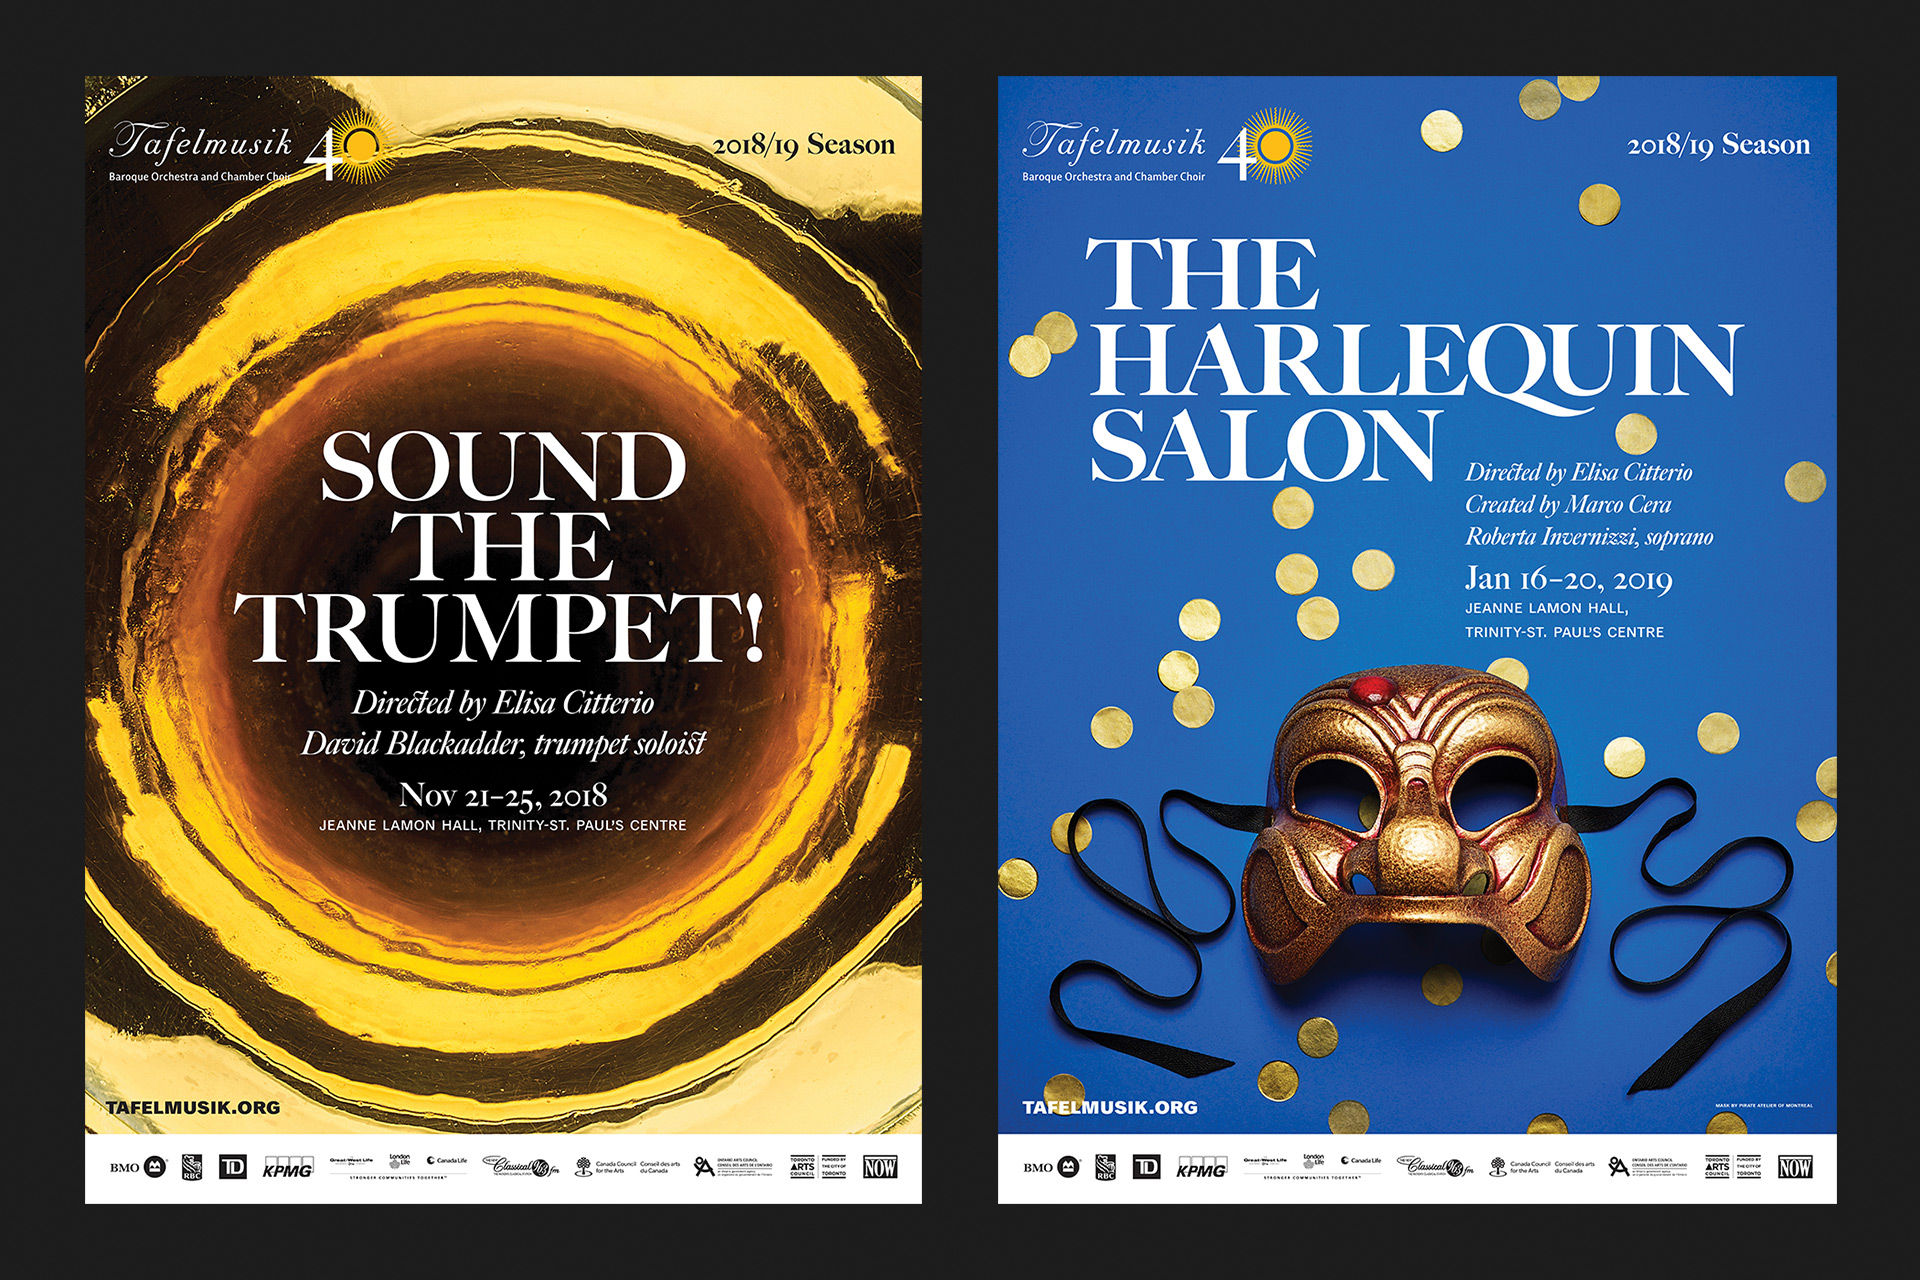 Sound the Trumpet! and The Harlequin Salon posters